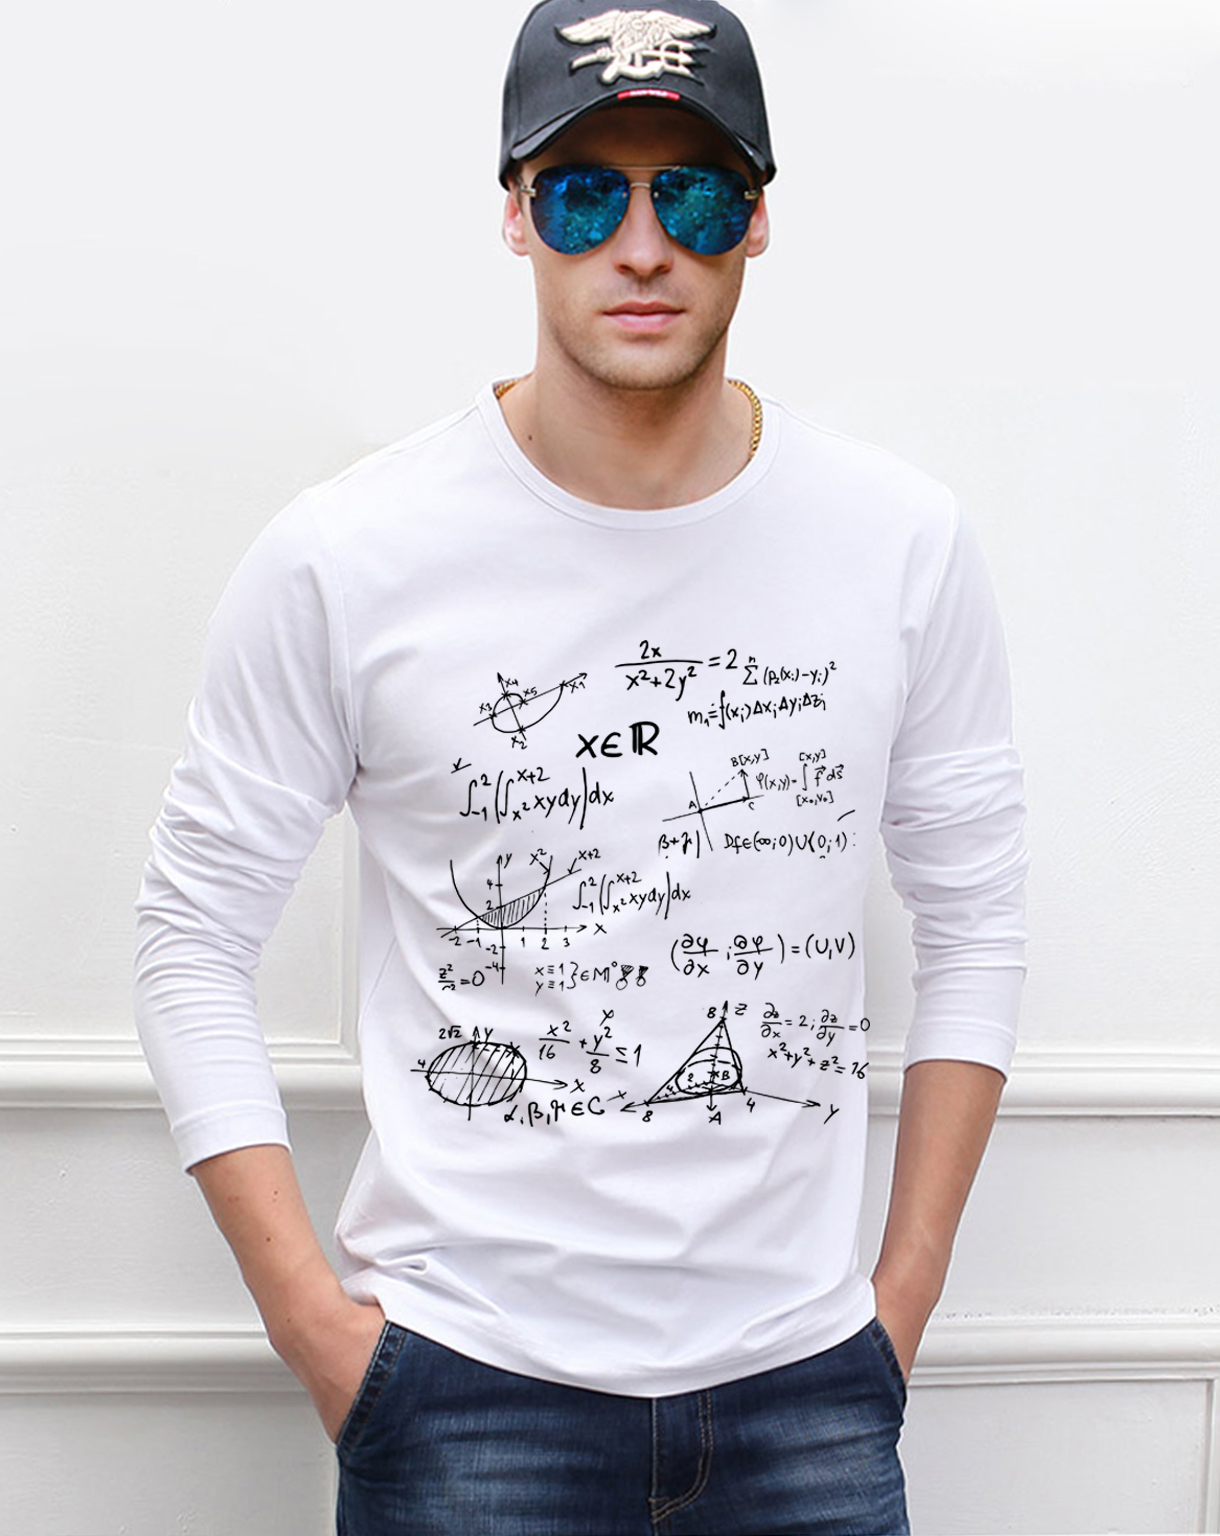 for adult science   t     shirt   Teen Math formula men long sleeve   t  -  shirt   2019 new style spring 100% cotton high quality top tees